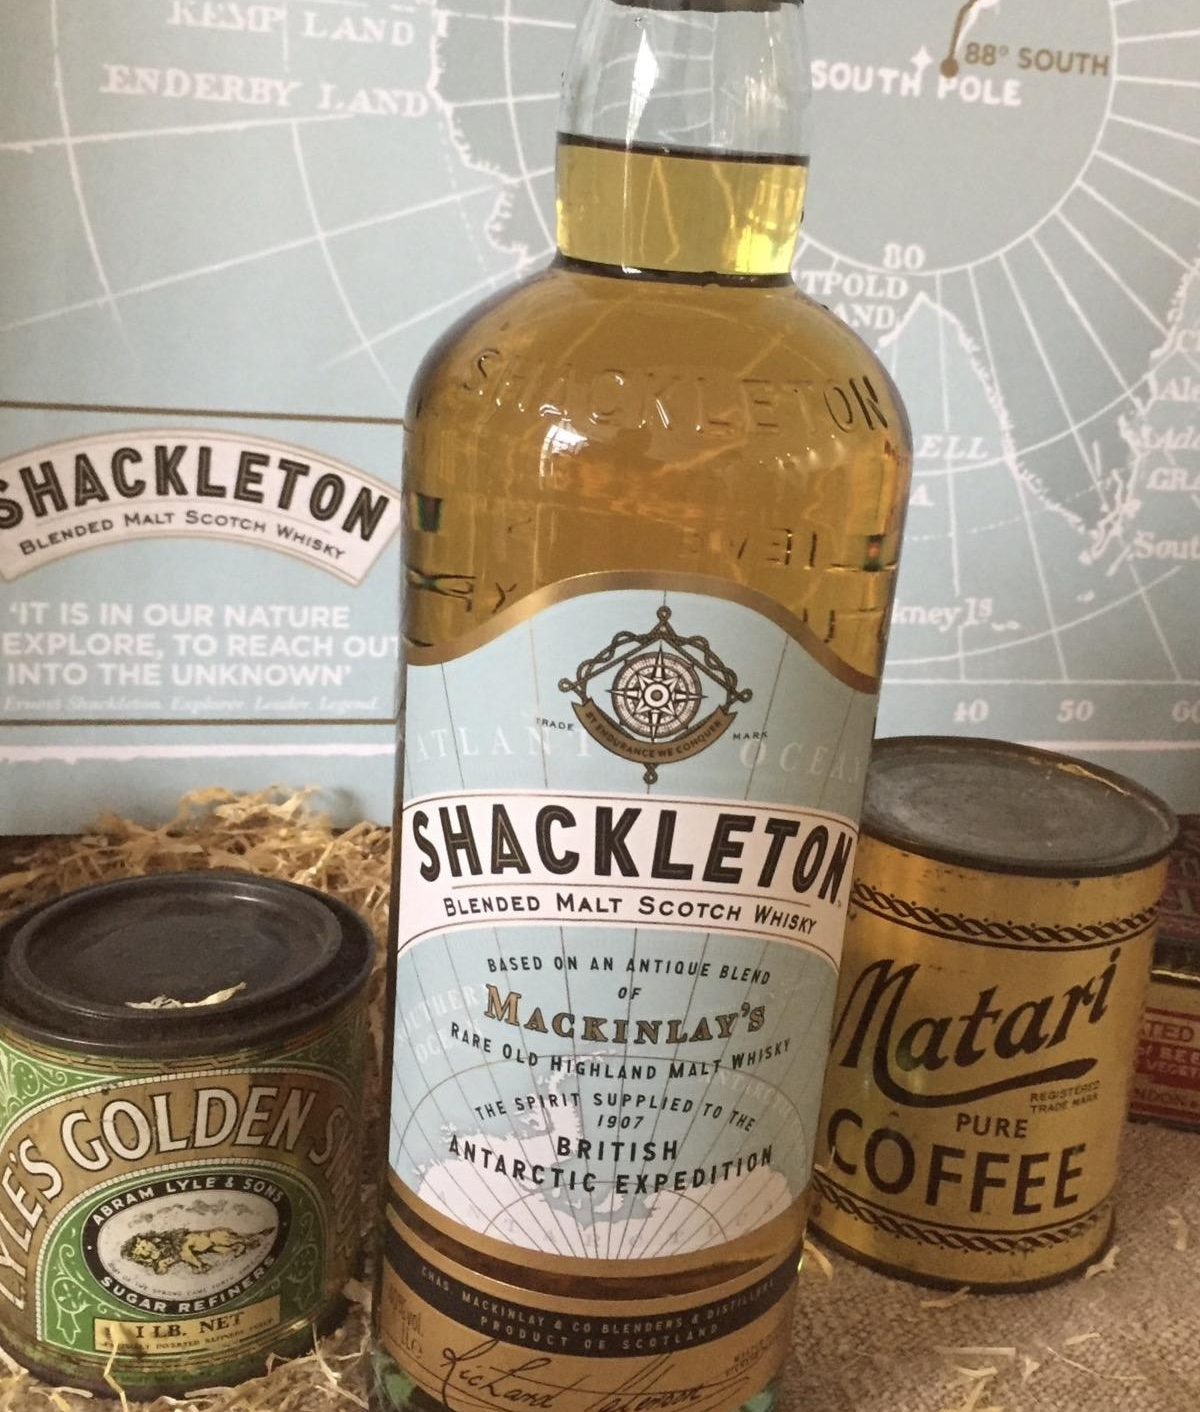 Shackleton Blended Malt Scotch Whisky:£40 – Average Retail Price; available from The Whisky Shop in May, wider retail roll-out from May onwards.